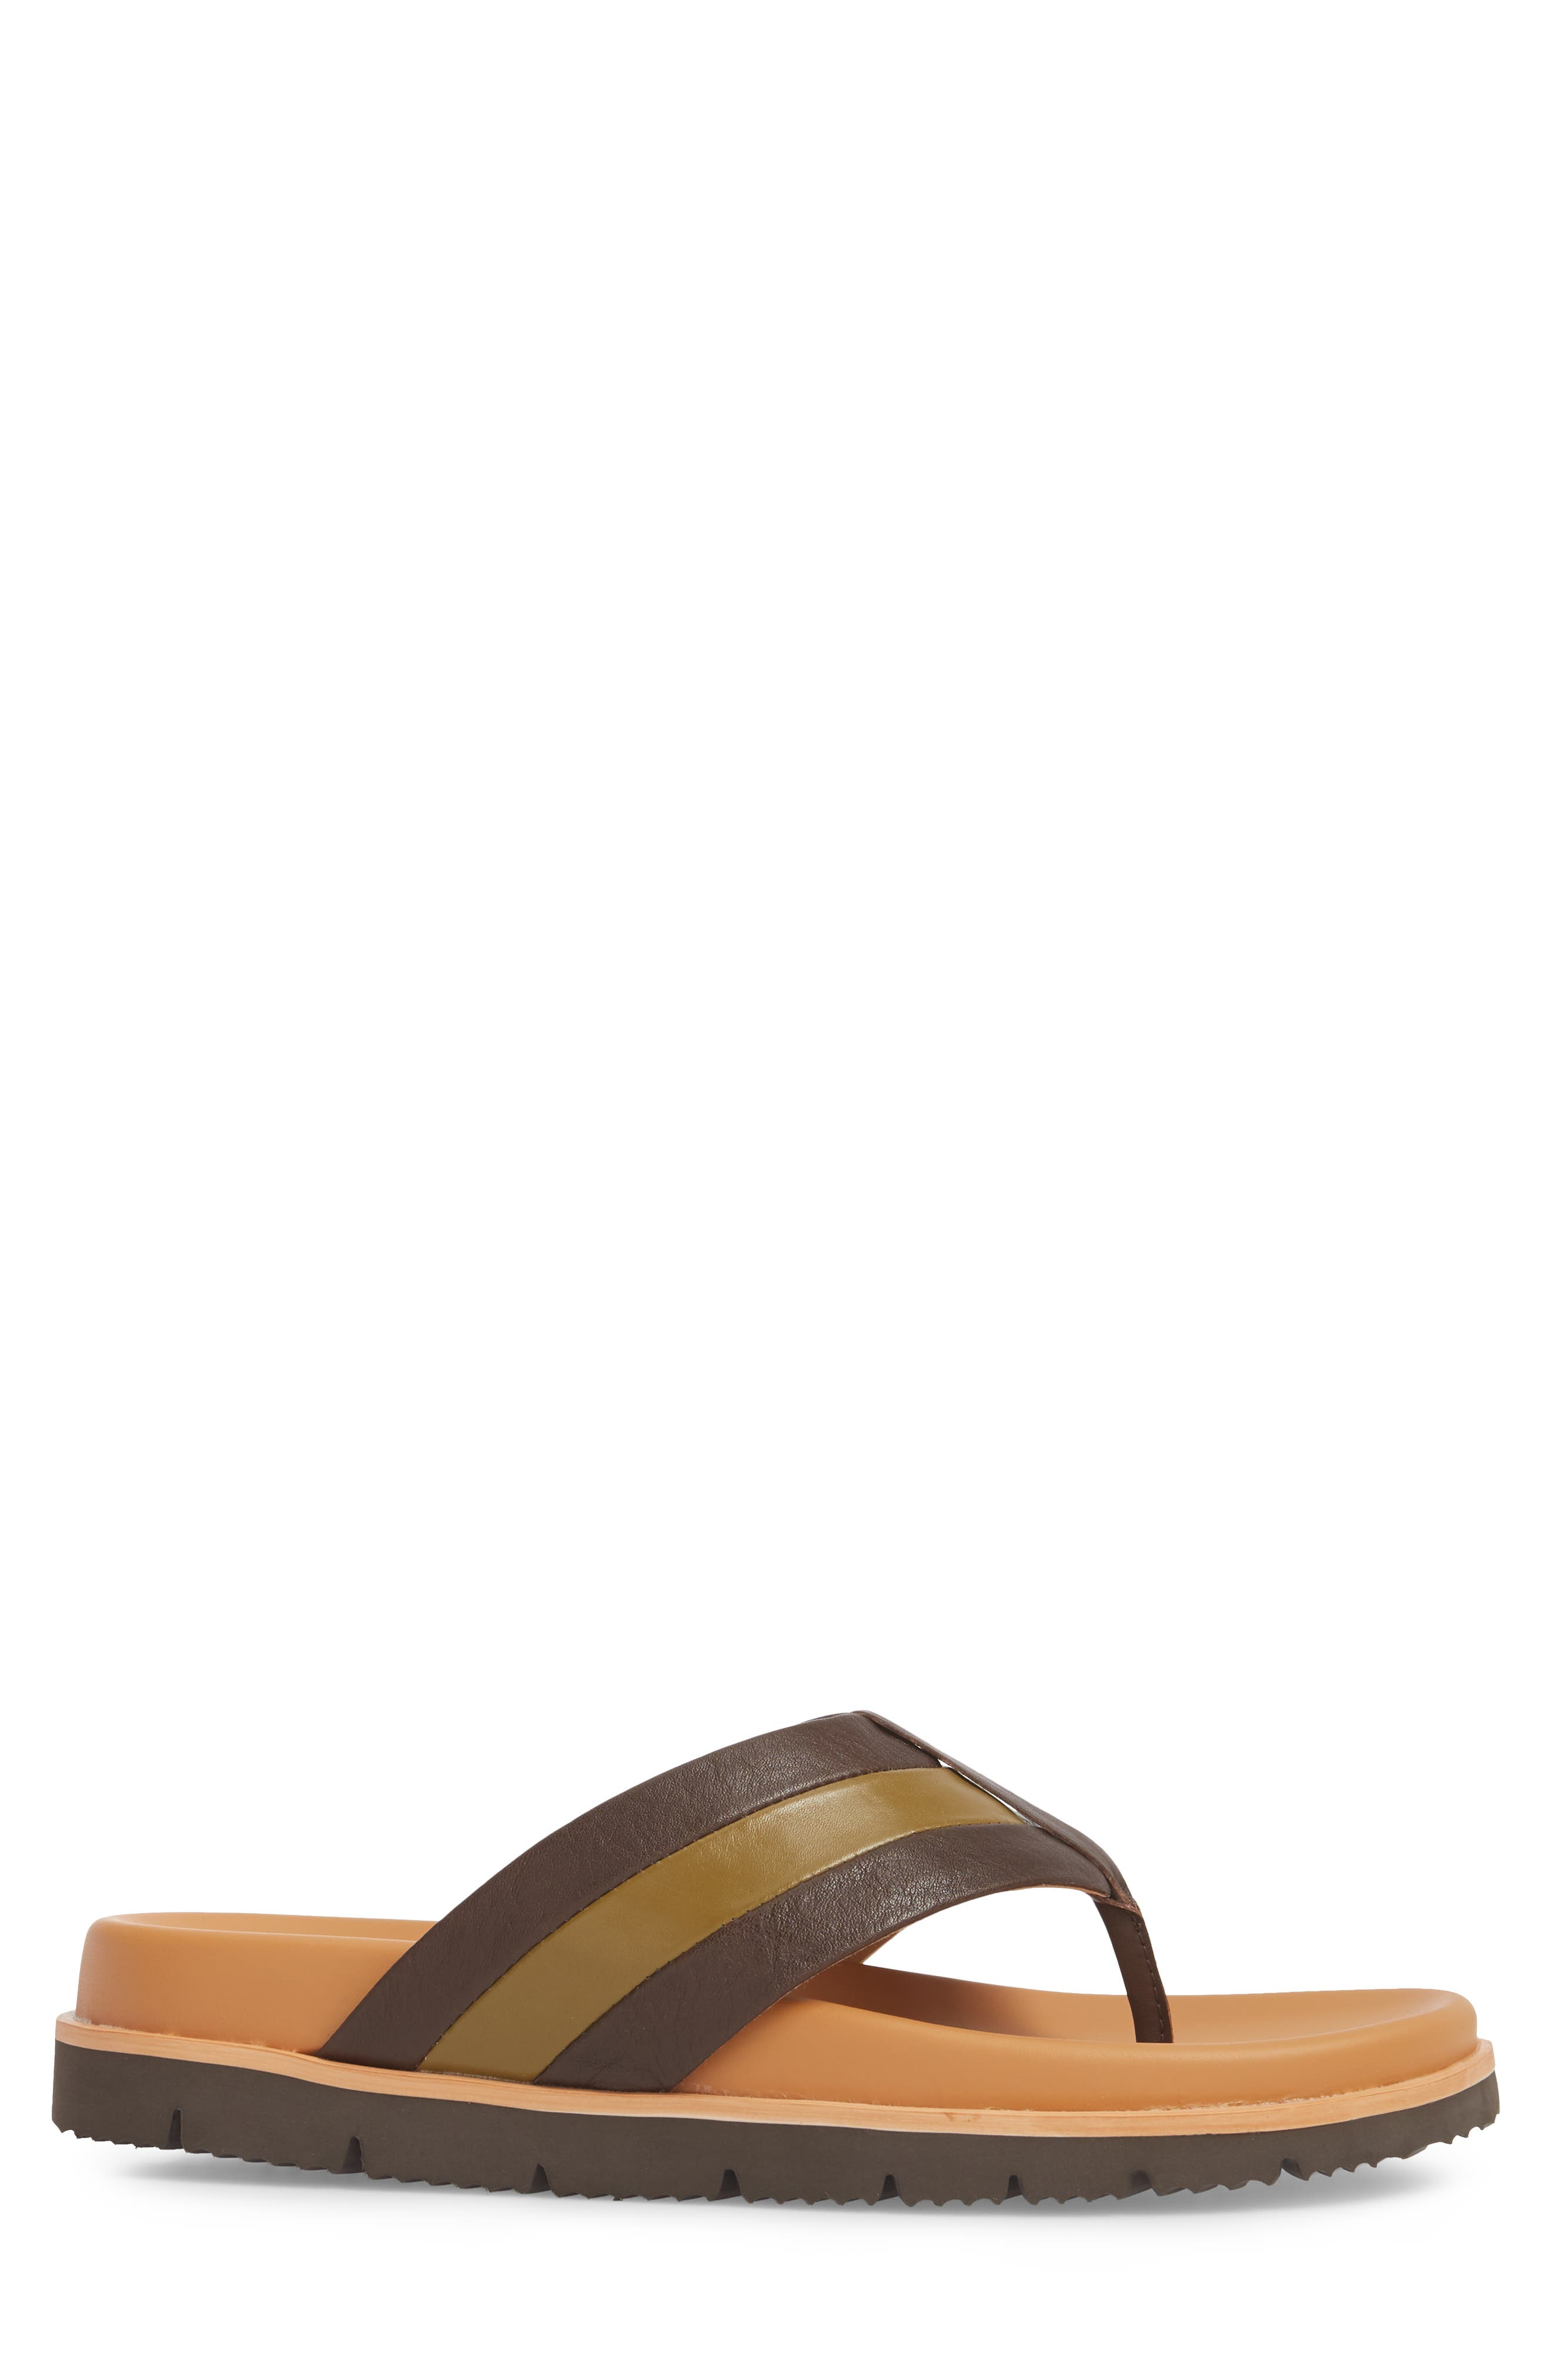 Bryce Striped Flip Flop,                             Alternate thumbnail 3, color,                             Brown/ Tan Leather